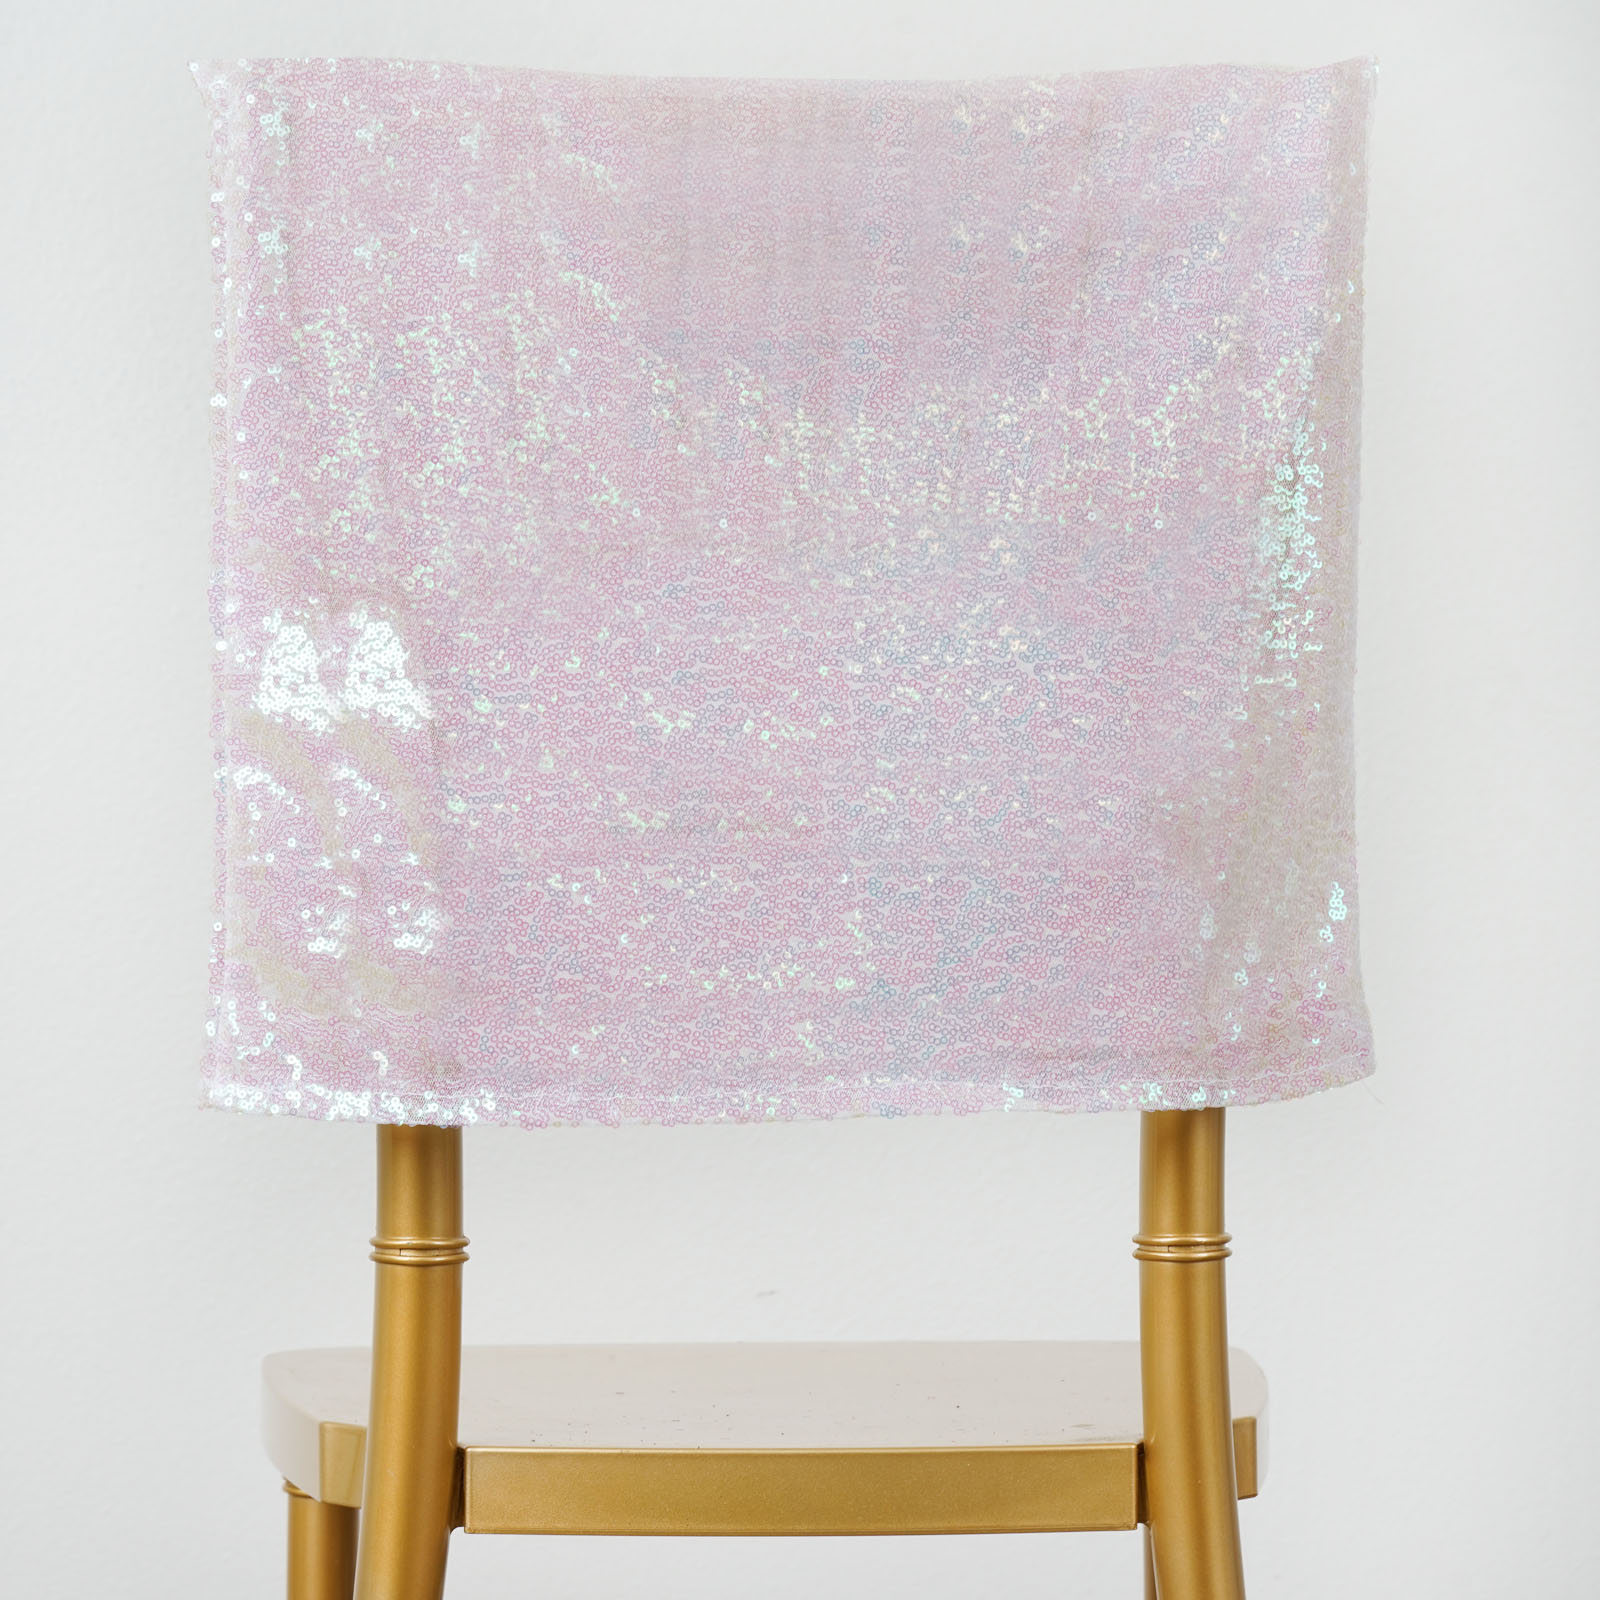 24 Pcs Sequin Chair Covers Square Top Caps Party Wedding